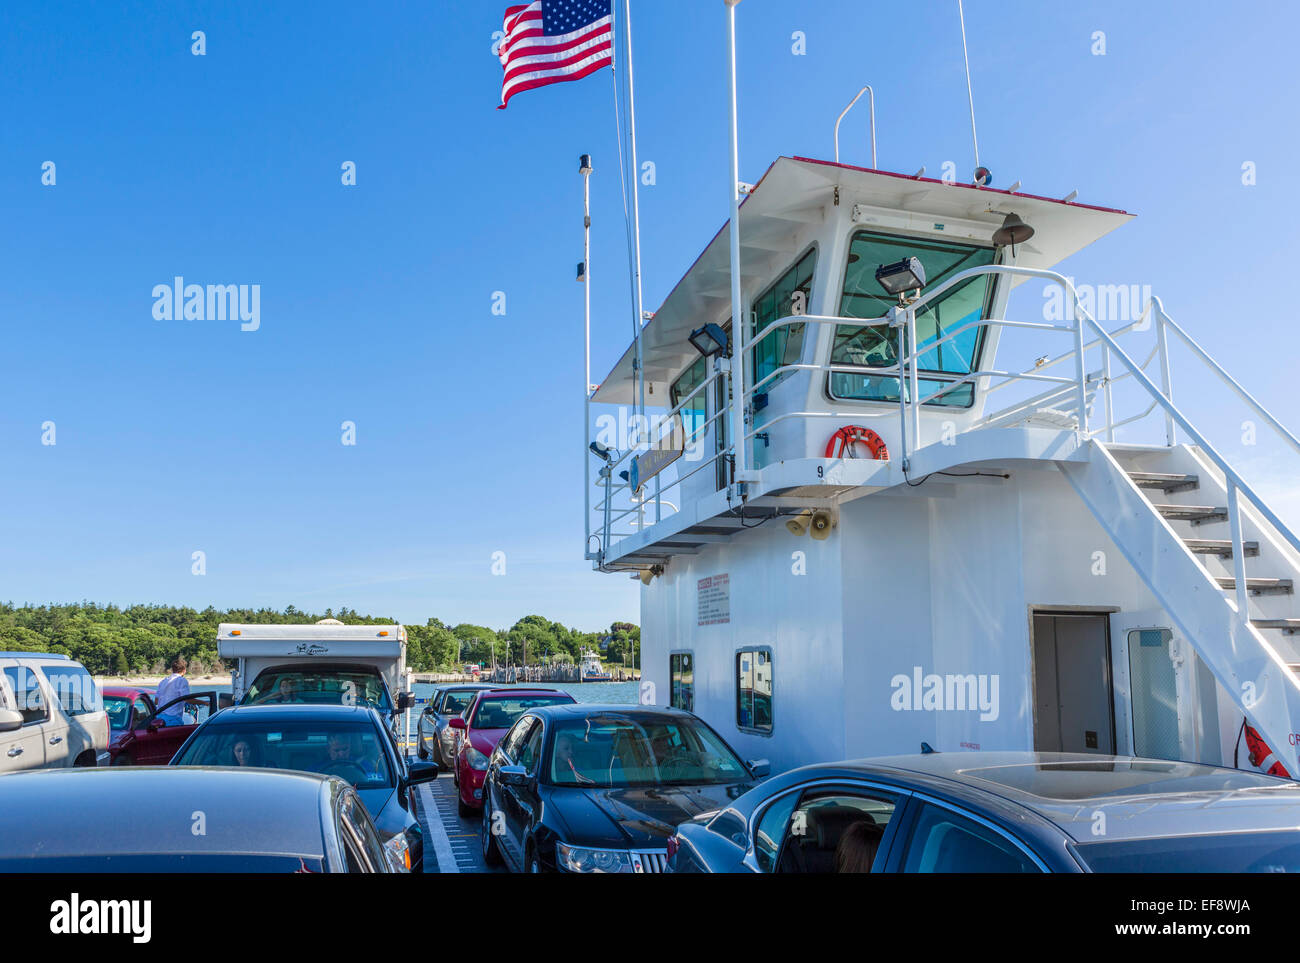 South Ferry between the South Fork and Shelter Island, Suffolk County, Long Island, NY, USA - Stock Image